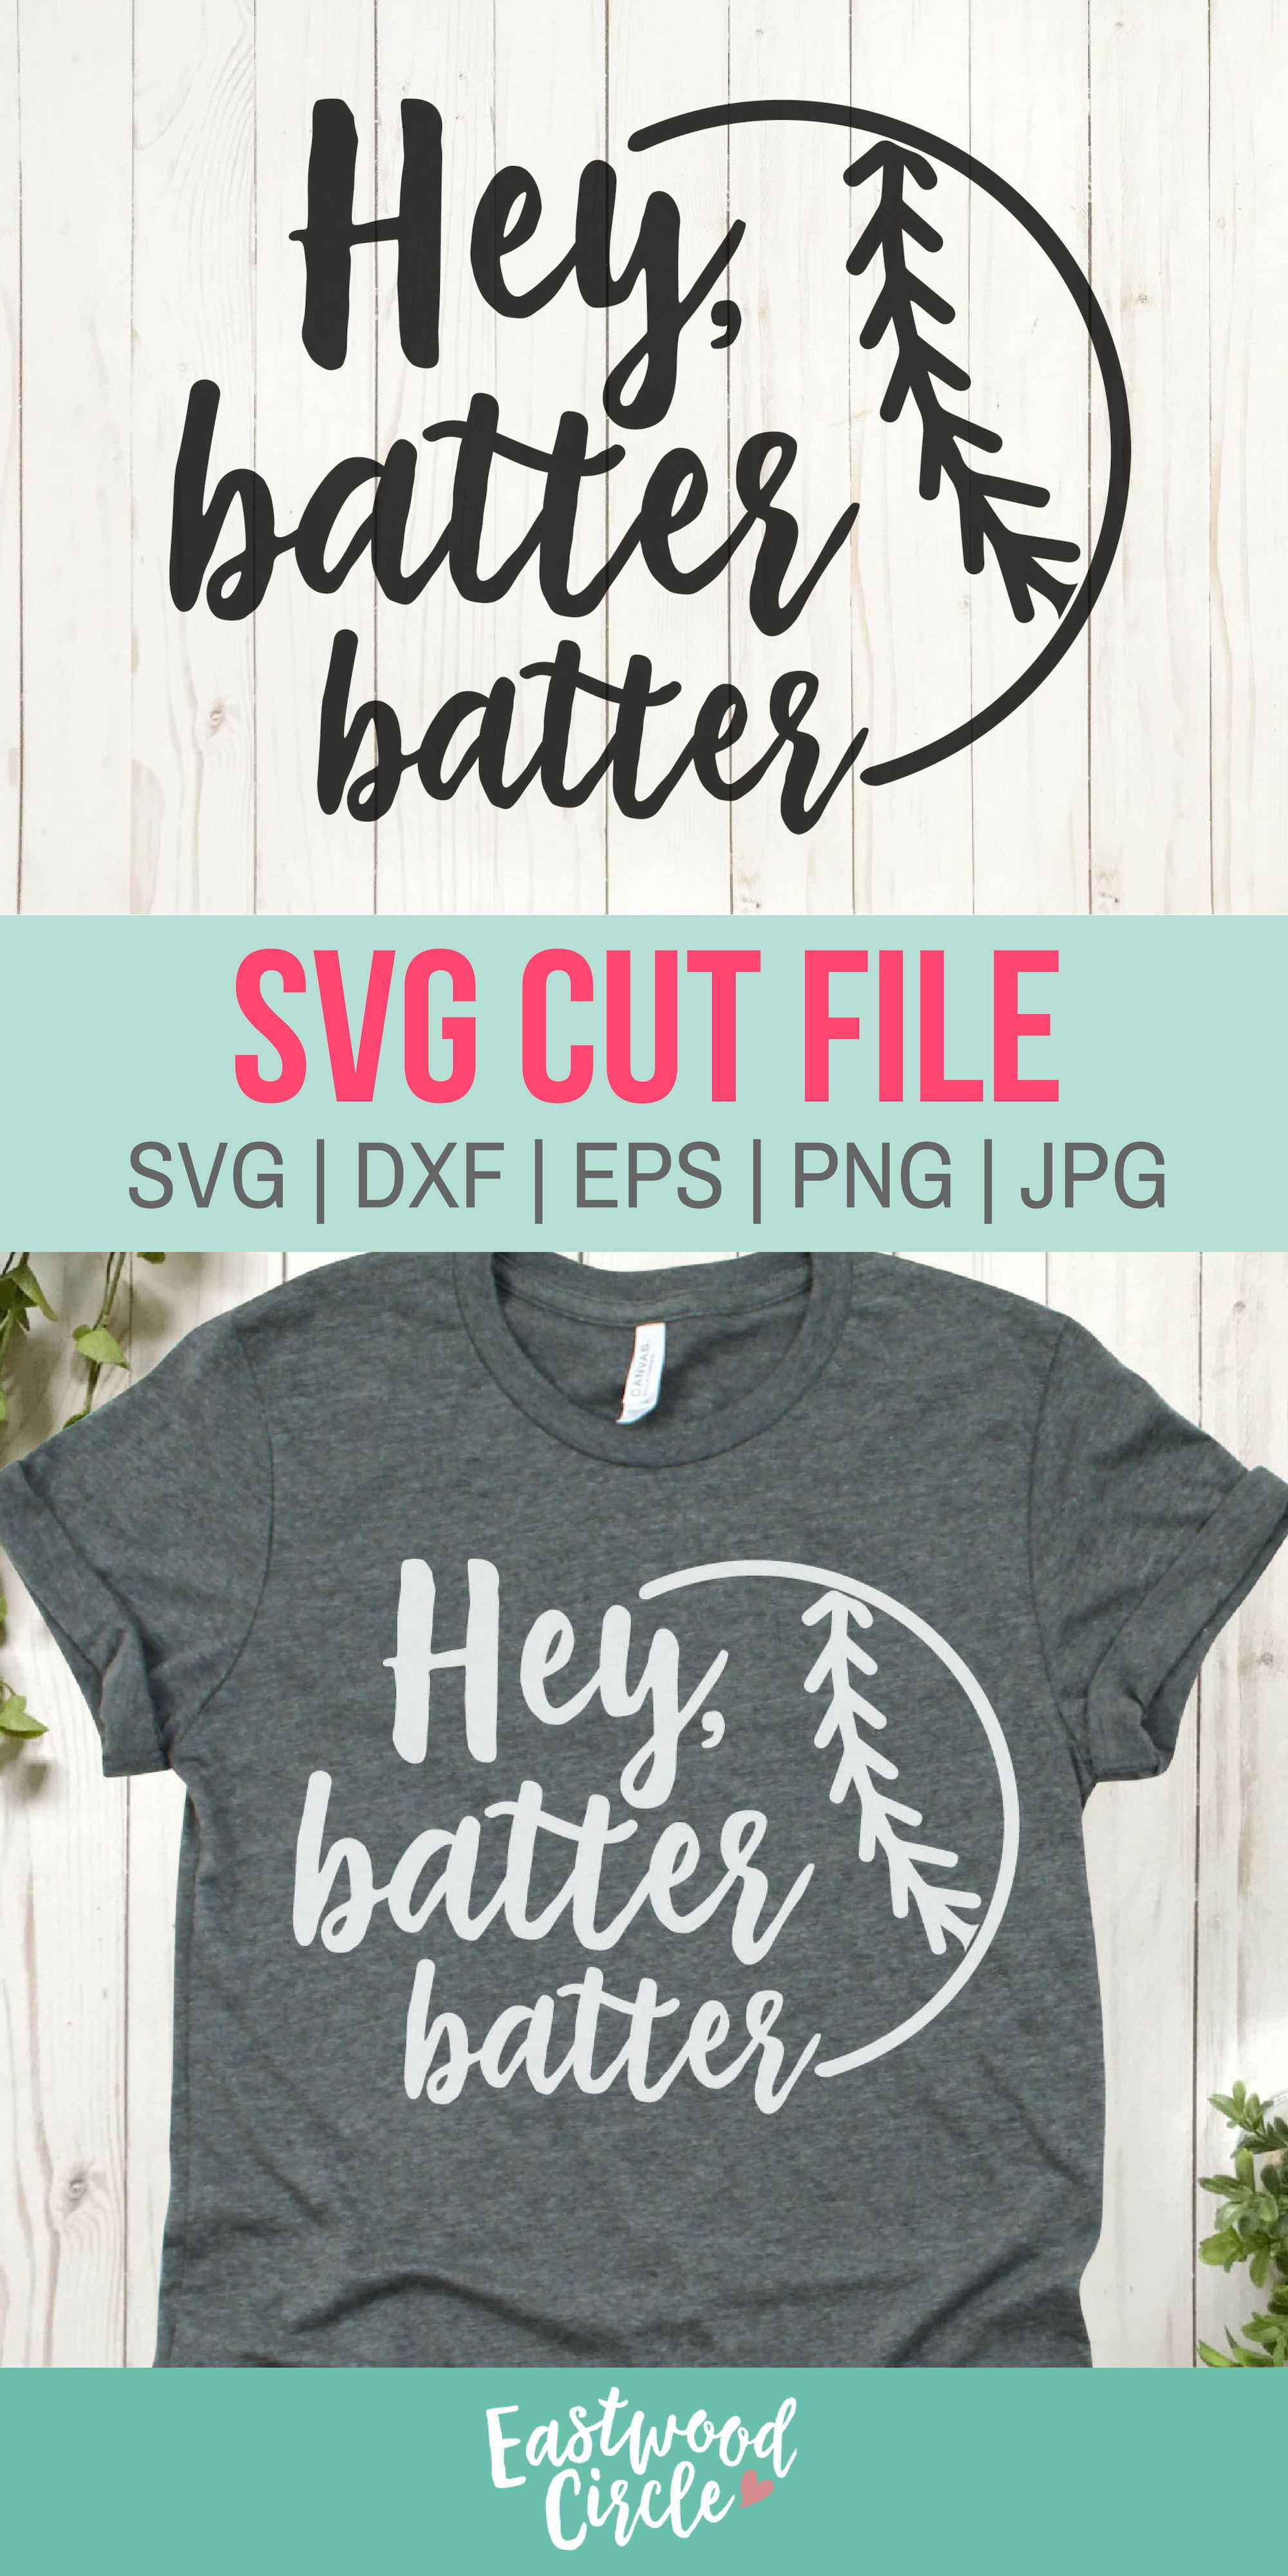 c021cb6d This baseball SVG file works great with the Cricut and Silhouette Cameo for  crafters to make DIY projects such as shirts, signs, mugs, and more!